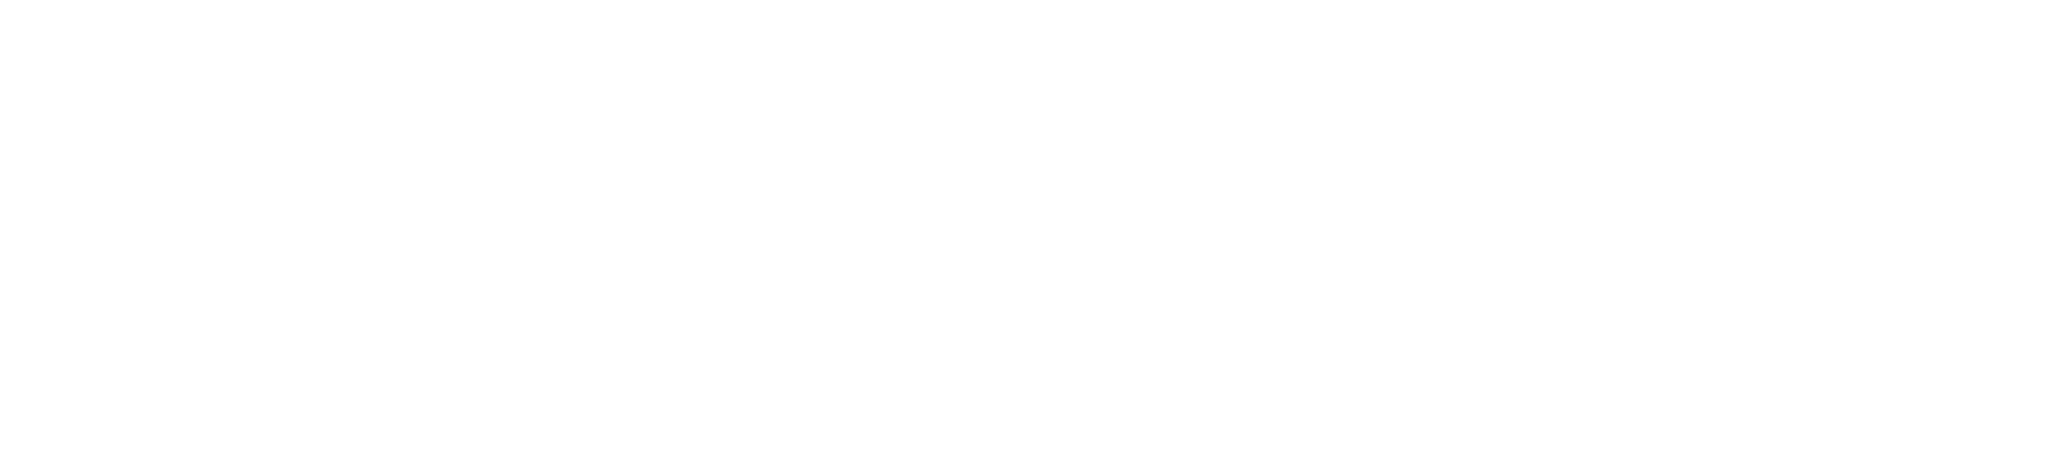 Cinema '76 @ Home: Dito at Doon